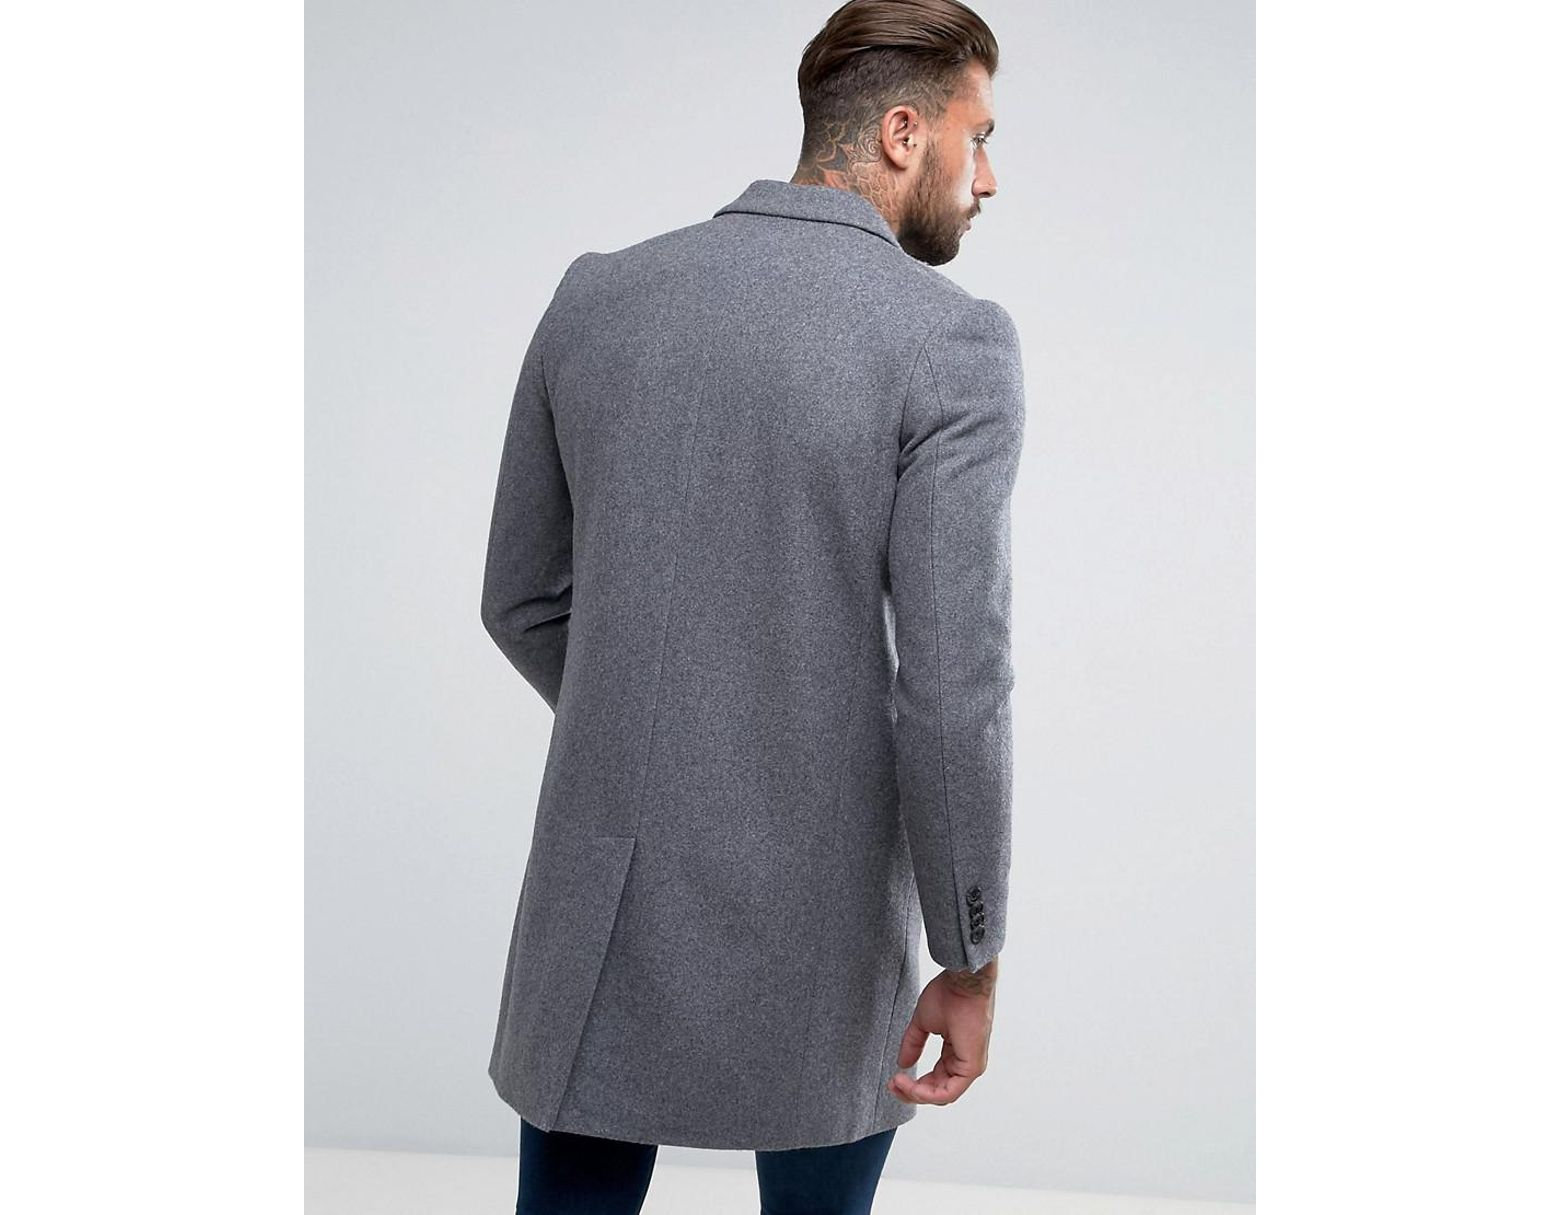 dfda0aab0e78 ASOS Wool Mix Overcoat In Light Grey Marl in Gray for Men - Save 41% - Lyst